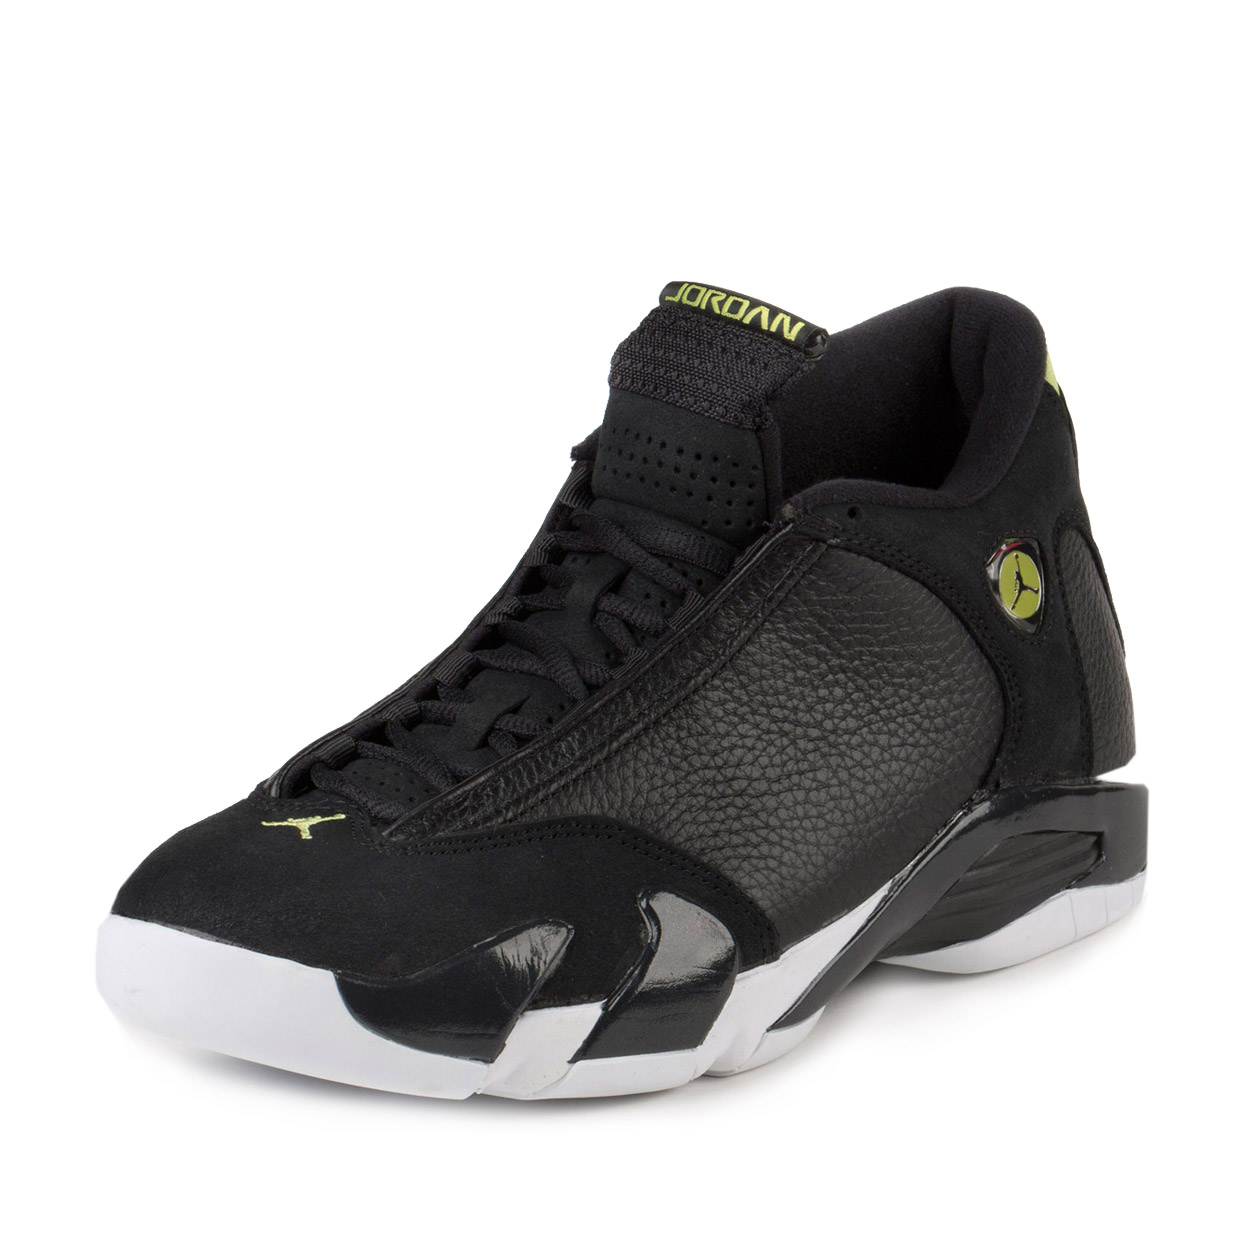 56a42209d67a87 ... best price nike mens air jordan 14 retro indiglo black vivid green  487471 005 walmart bbcaf